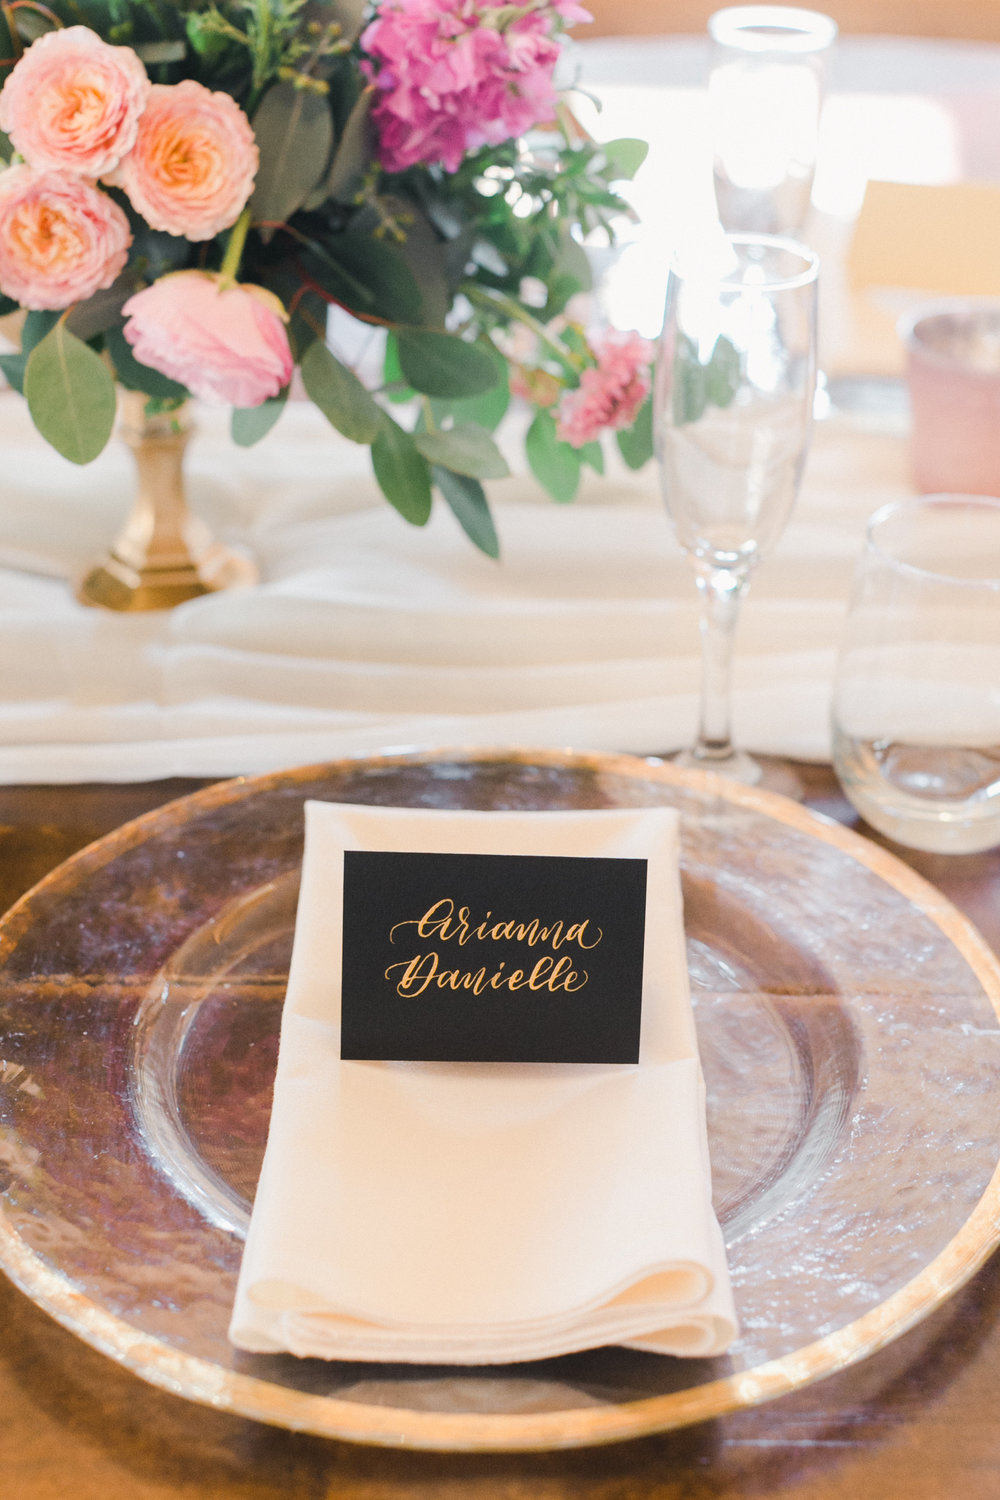 Yosemite wedding place cards calligraphy items by paperloveme8.jpg